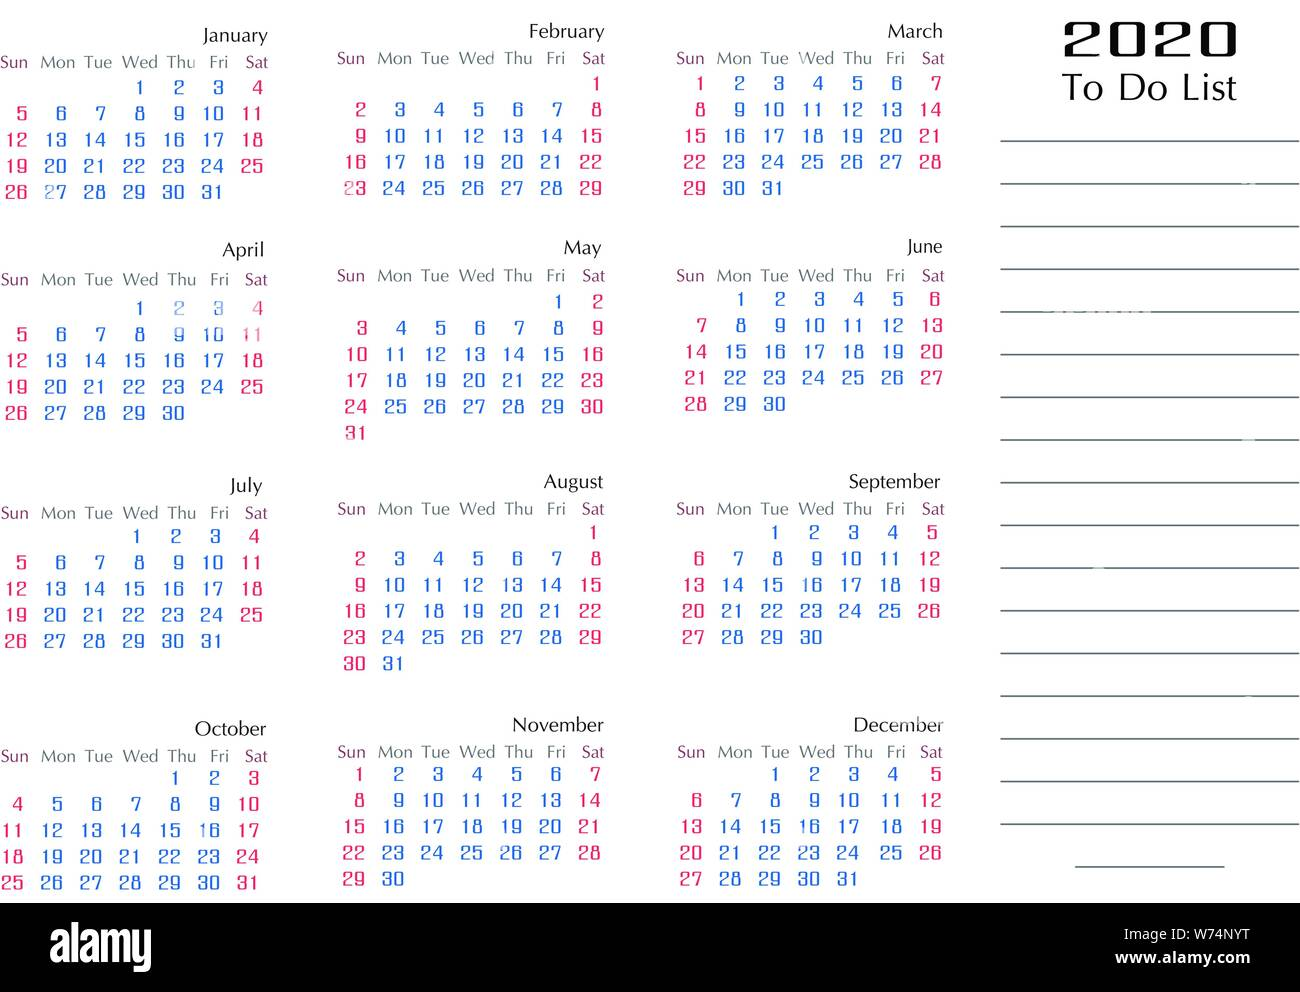 The List 2020.Simple 2020 Calendar Template Year To Do List Planner Stock